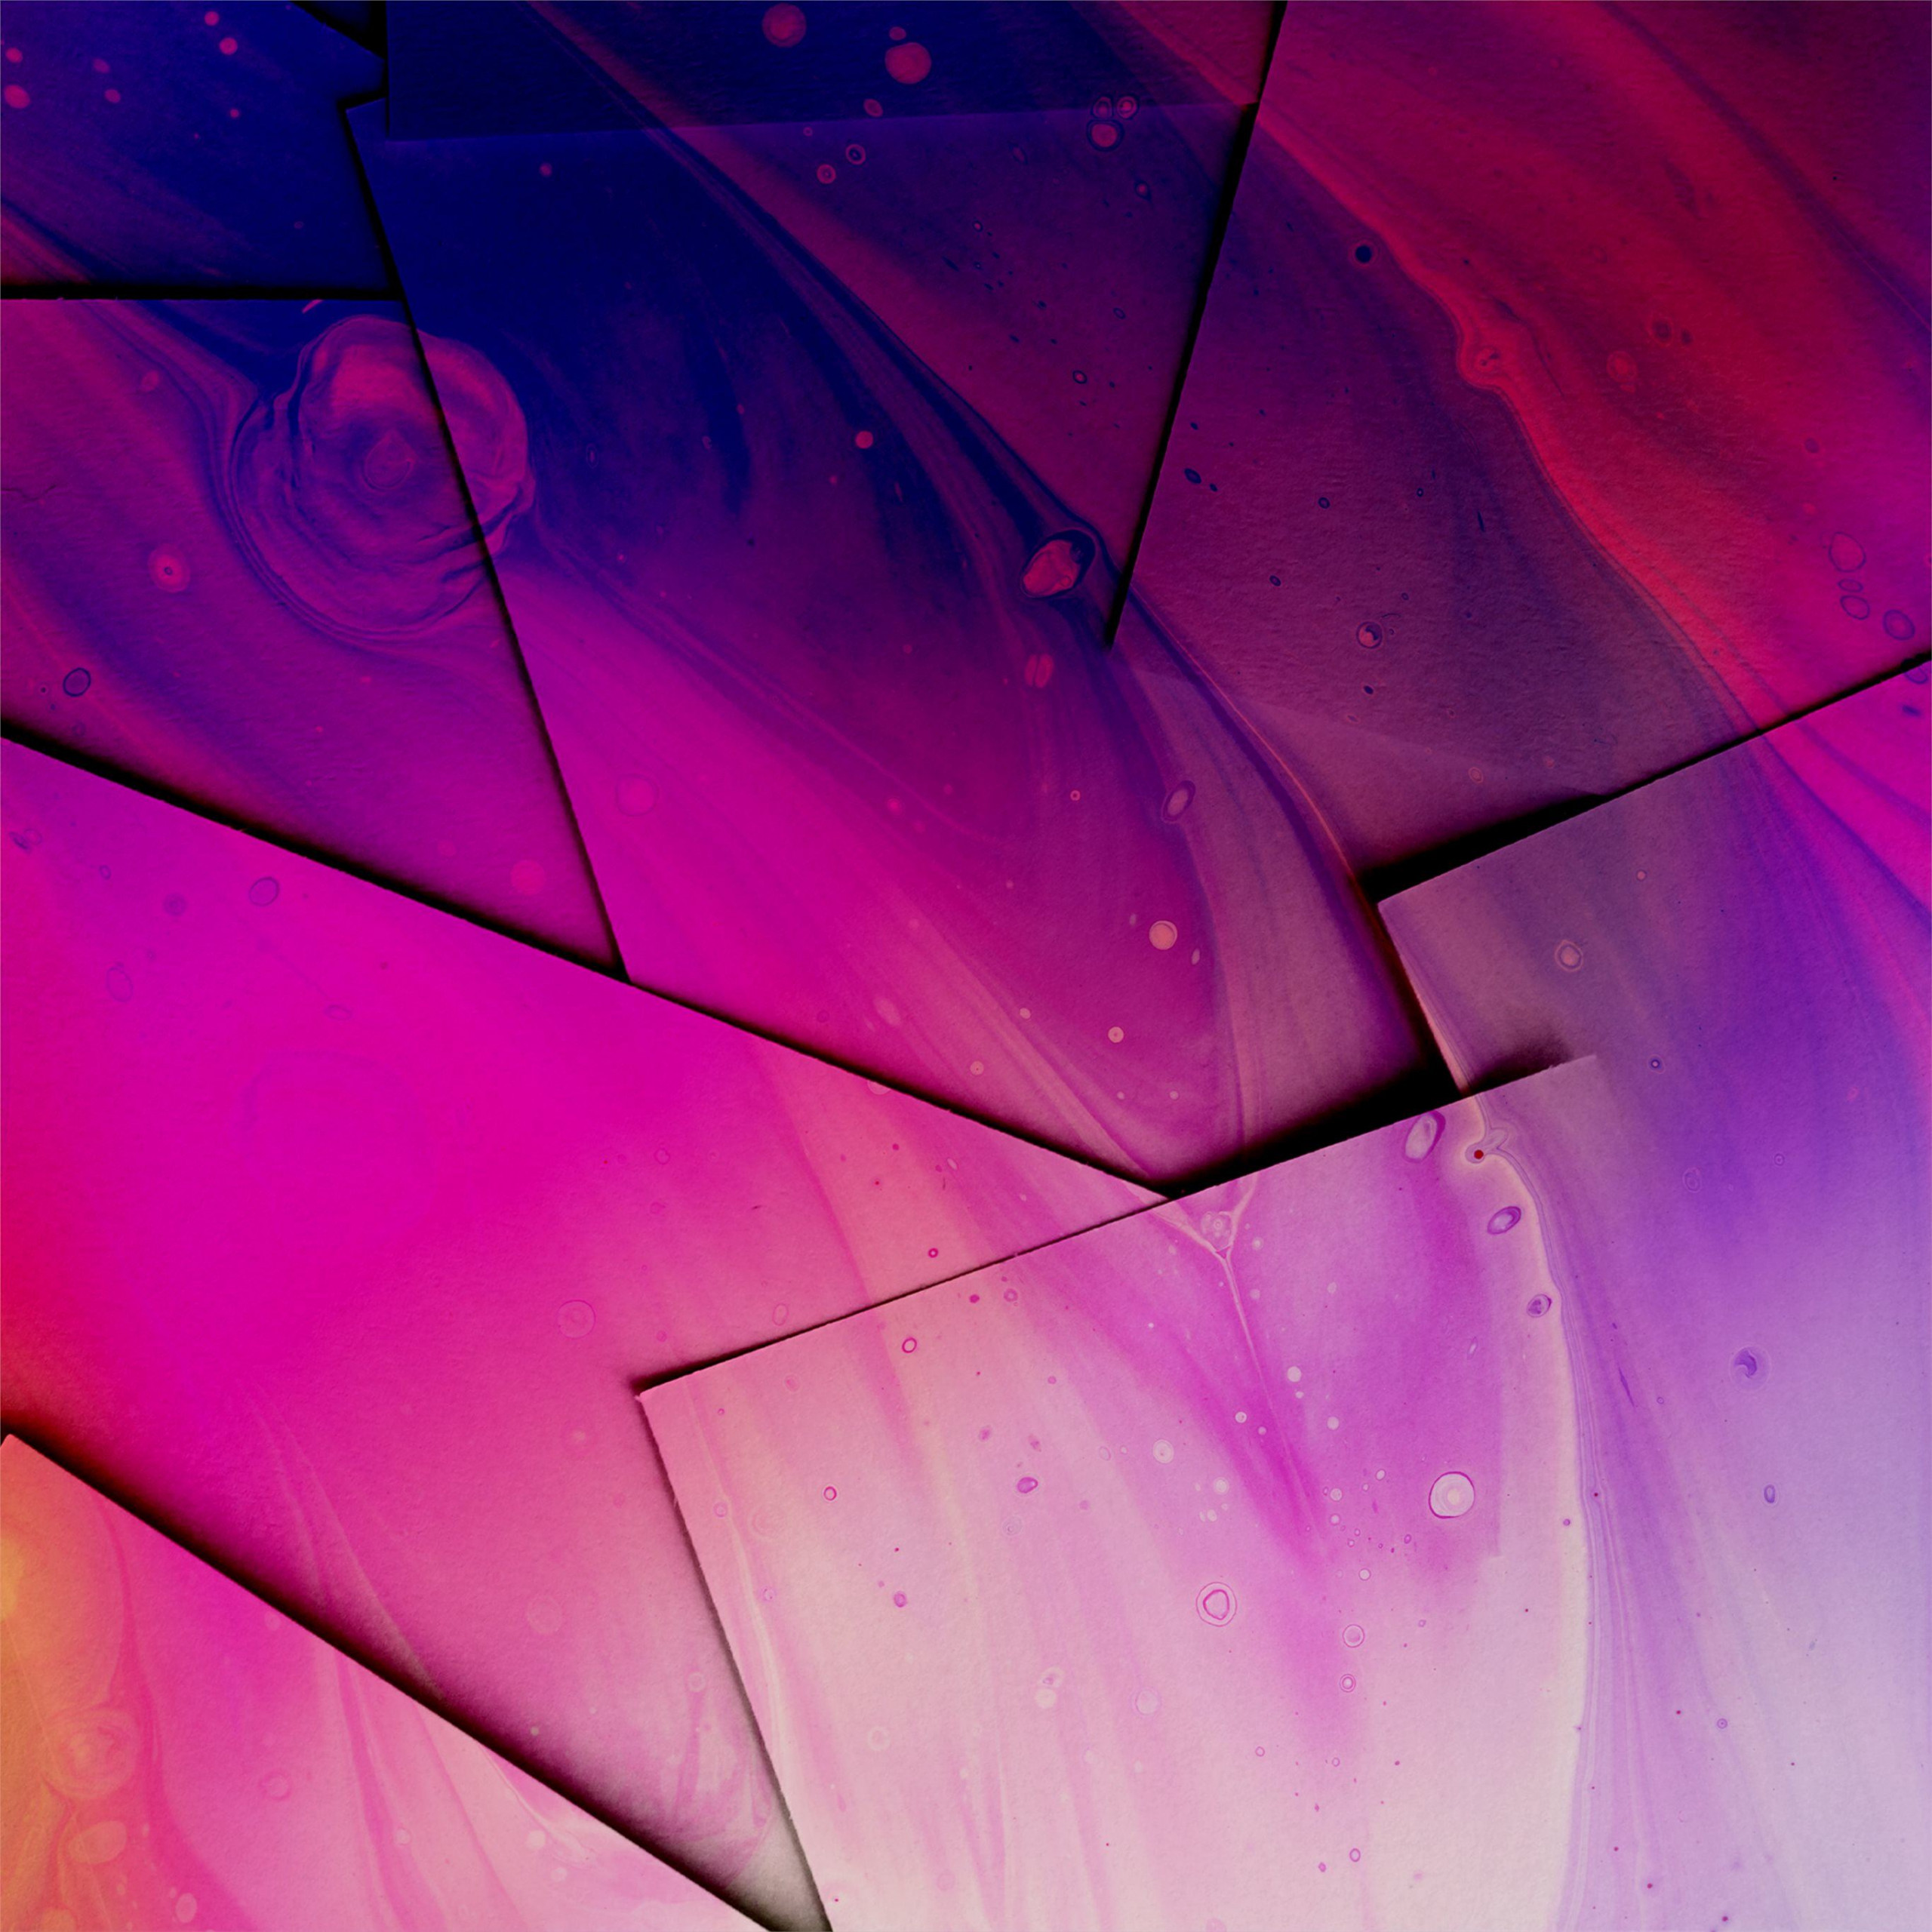 pages abstract 4k ipad pro wallpaper ilikewallpaper